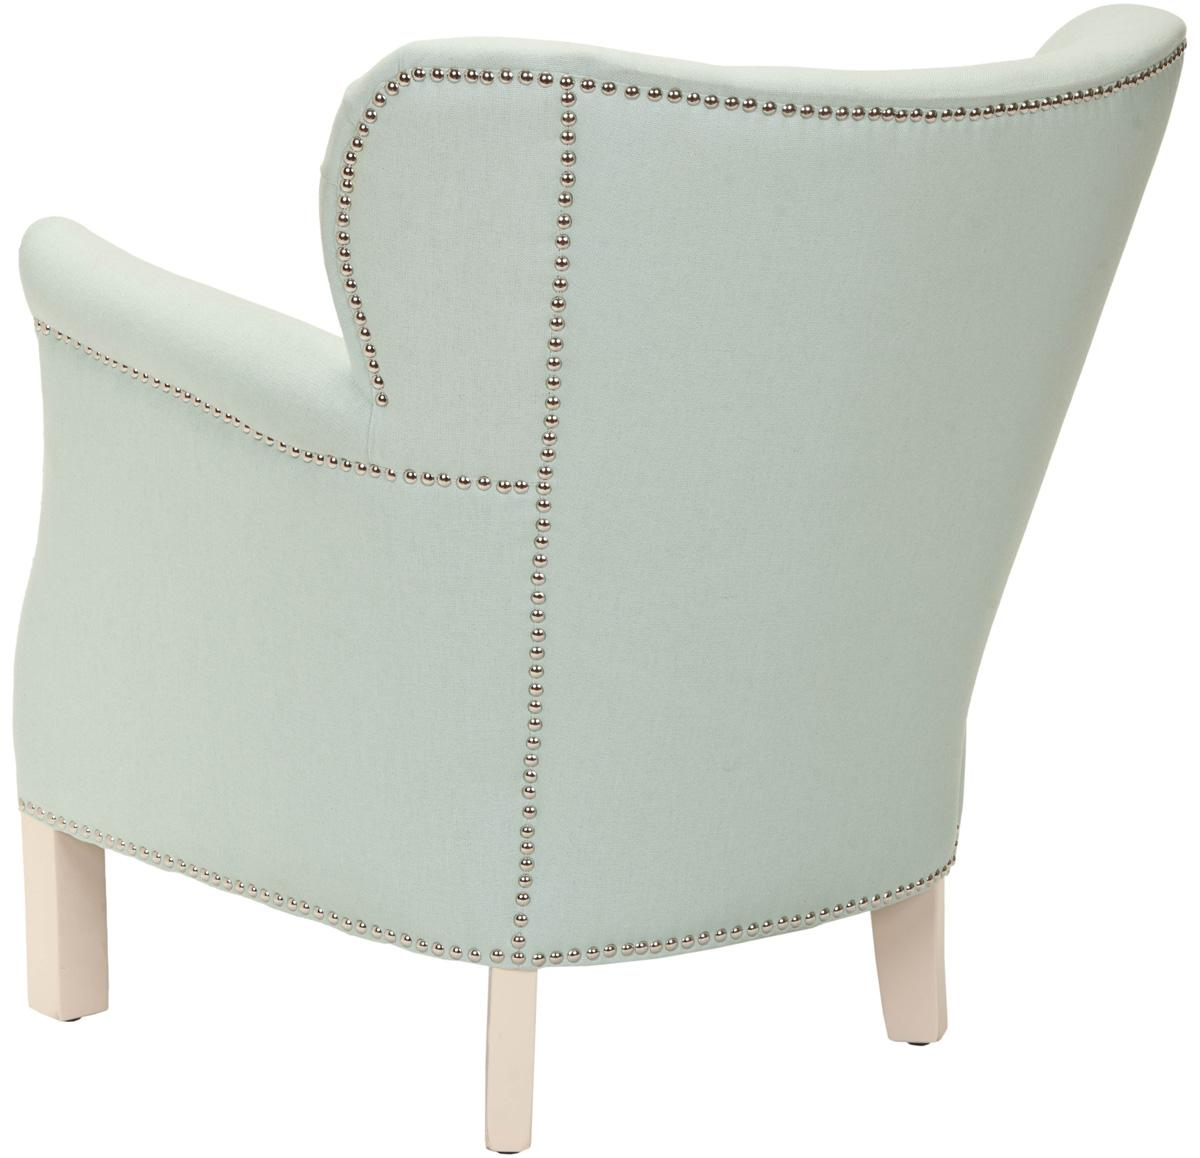 Marvelous ACCENT CHAIRS. Color: Robins Egg Blue